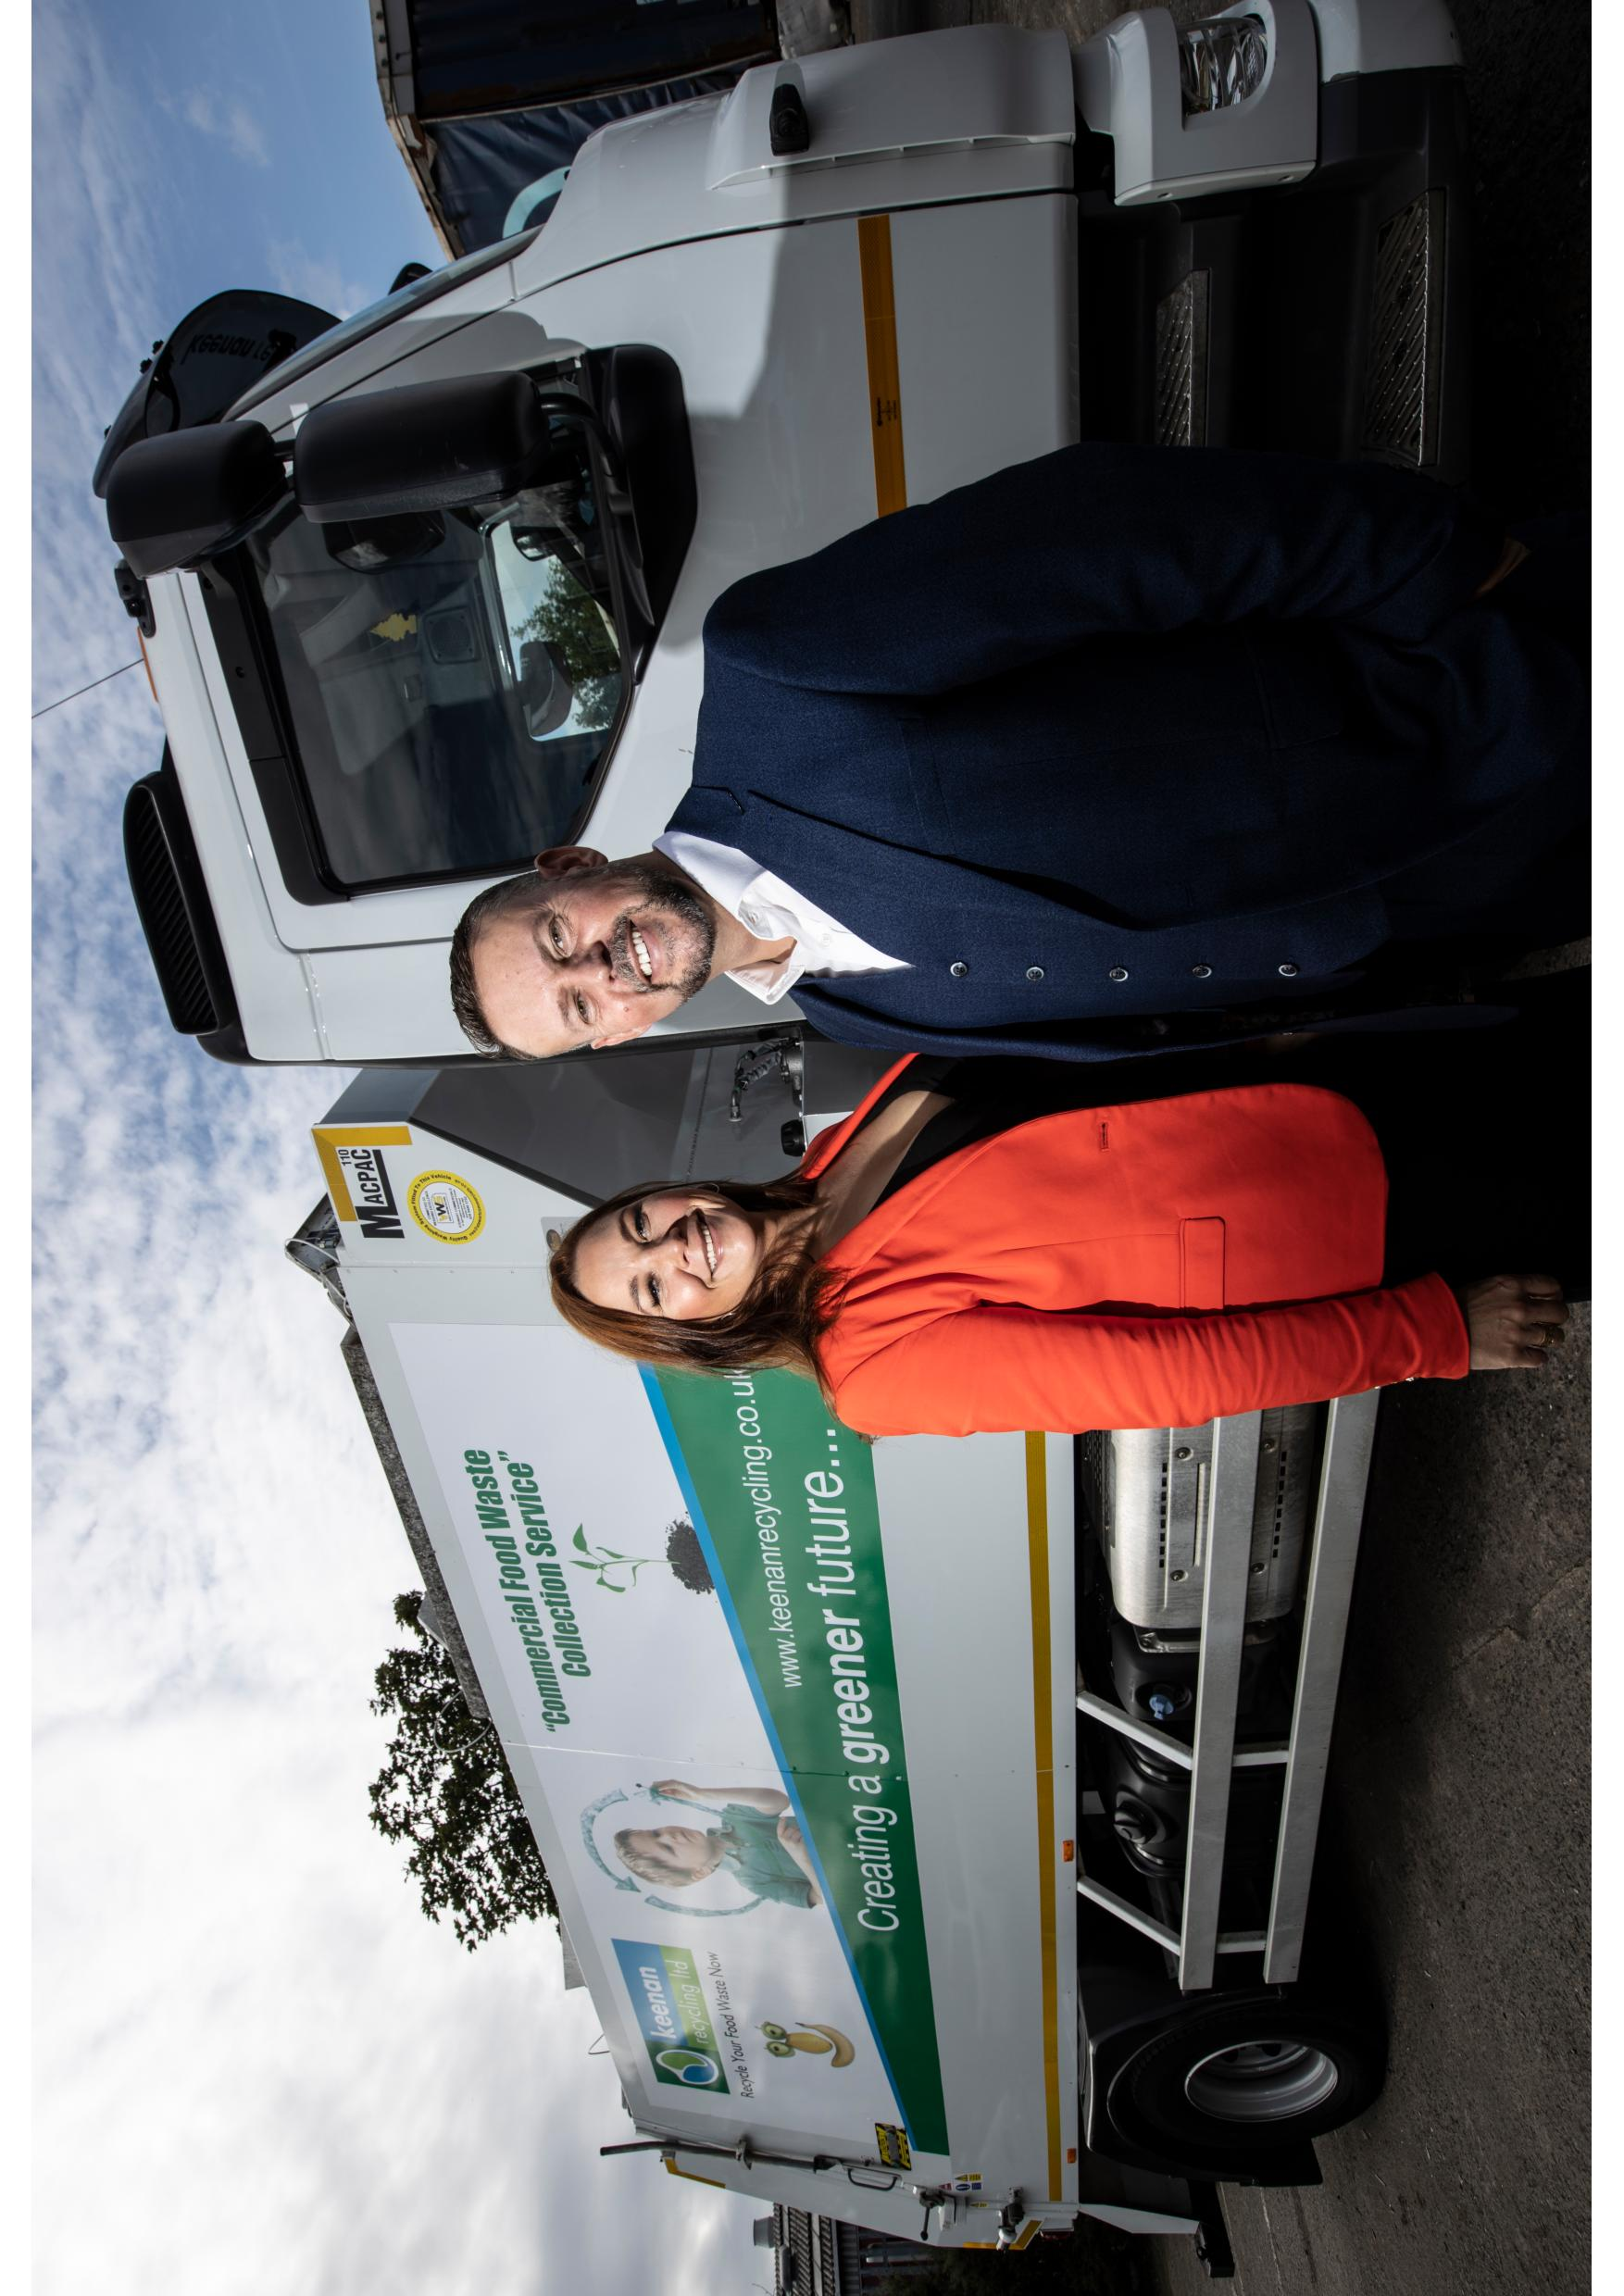 managing director and collections director, Grant and Claire Keenan-Business News Scotland